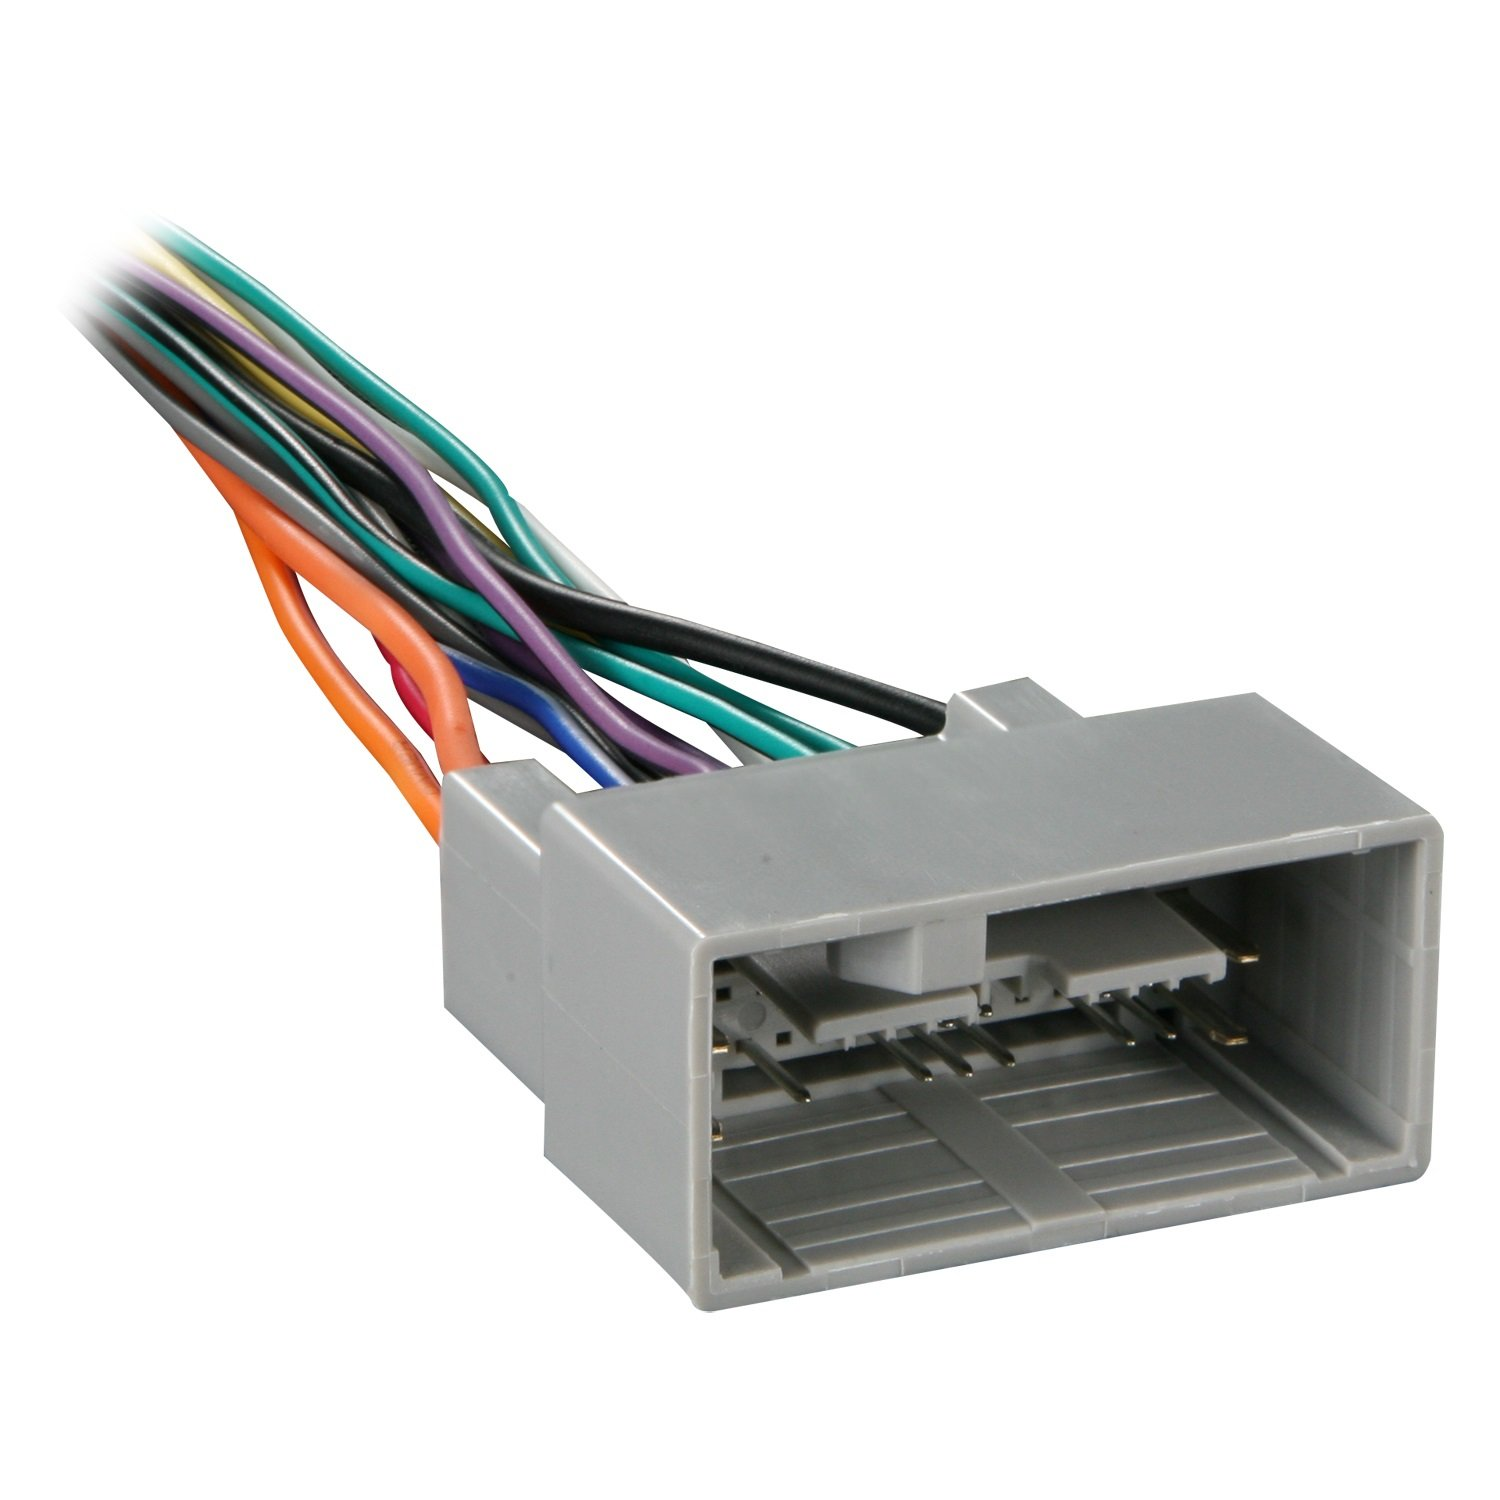 613Kg8IWI7L._SL1500_ amazon com metra 70 1729 radio wiring harness for honda 2008 up  at edmiracle.co